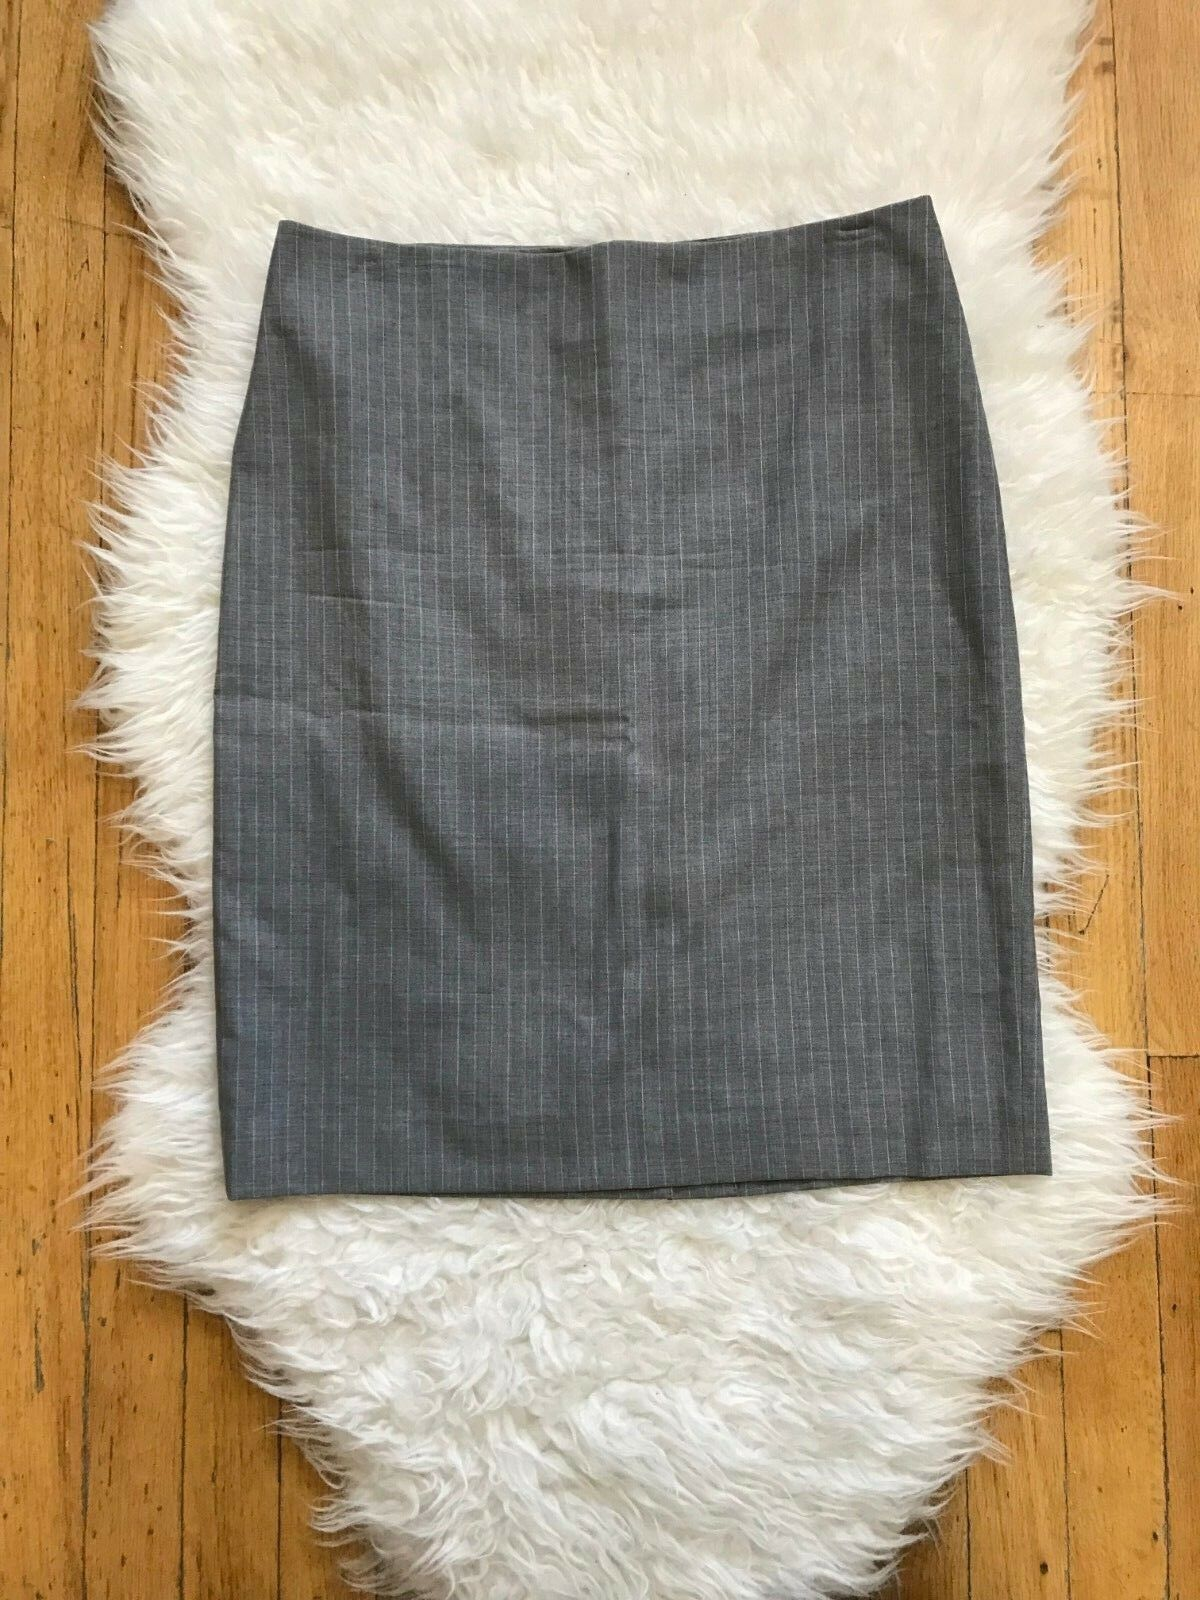 165 THEORY FRIEDA C ESSEX 100% WOOL KNEE LENGTH PENCIL SKIRTGREY PINSTRIPE6